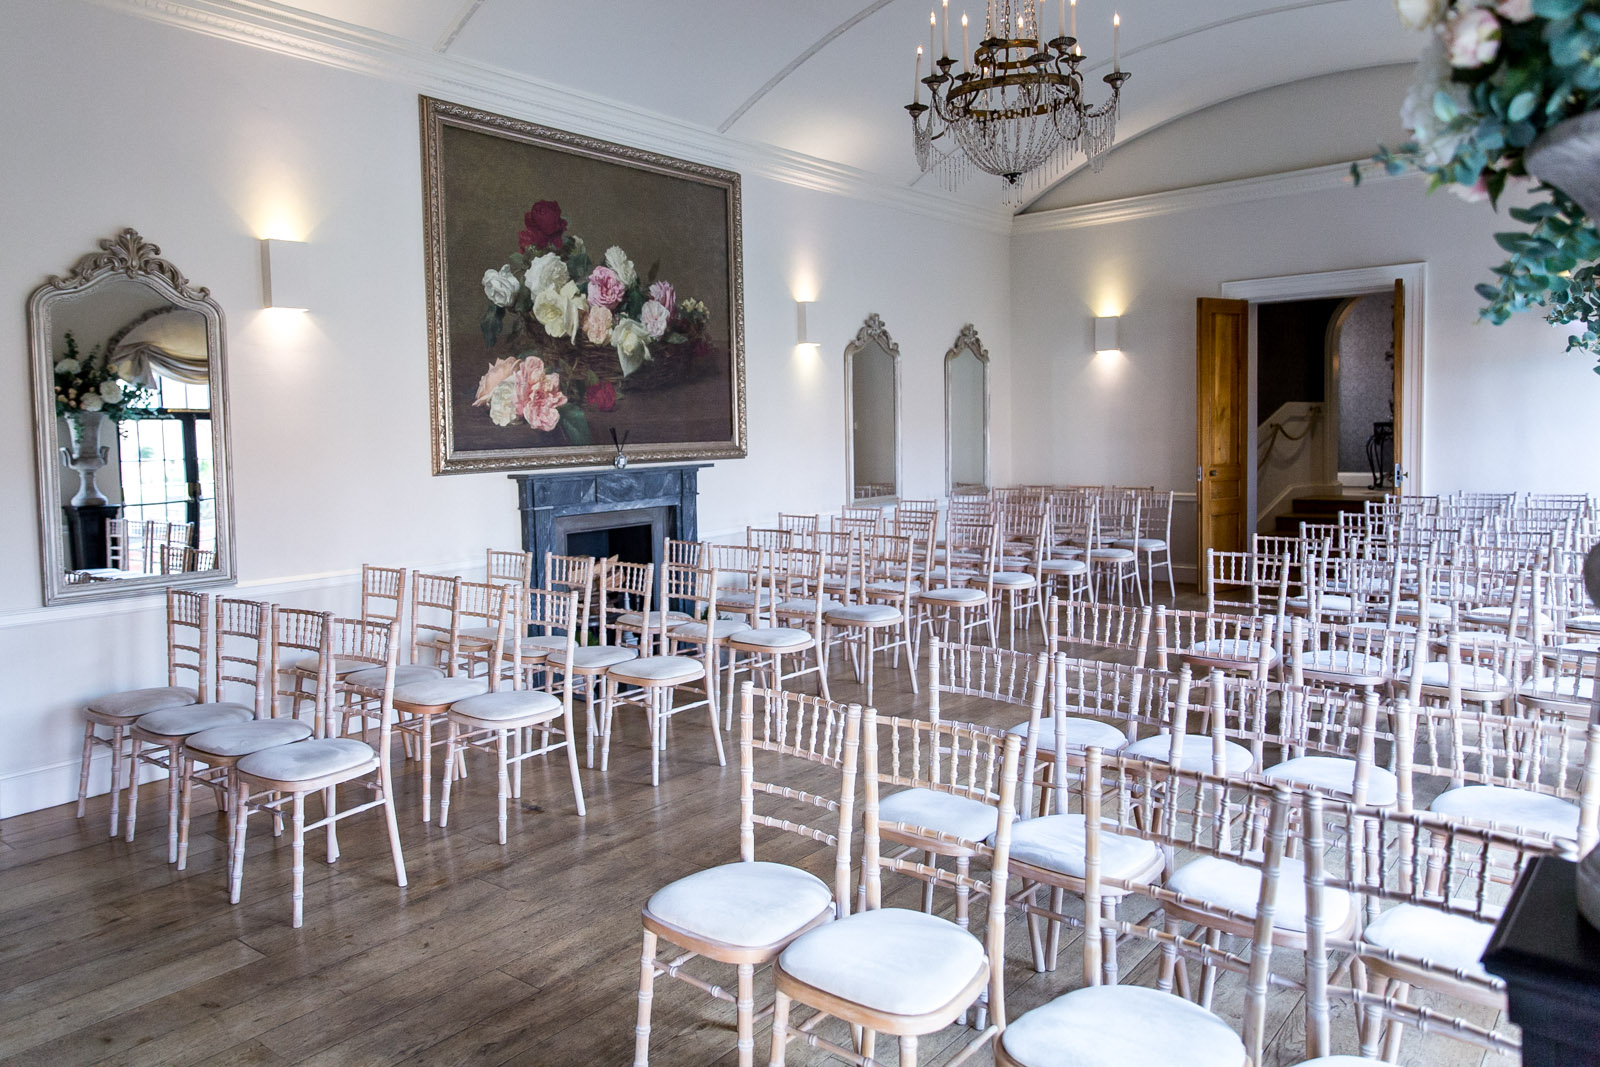 Alrewas Hayes is a beautiful and exclusive country house wedding venue on the outskirts of Lichfield